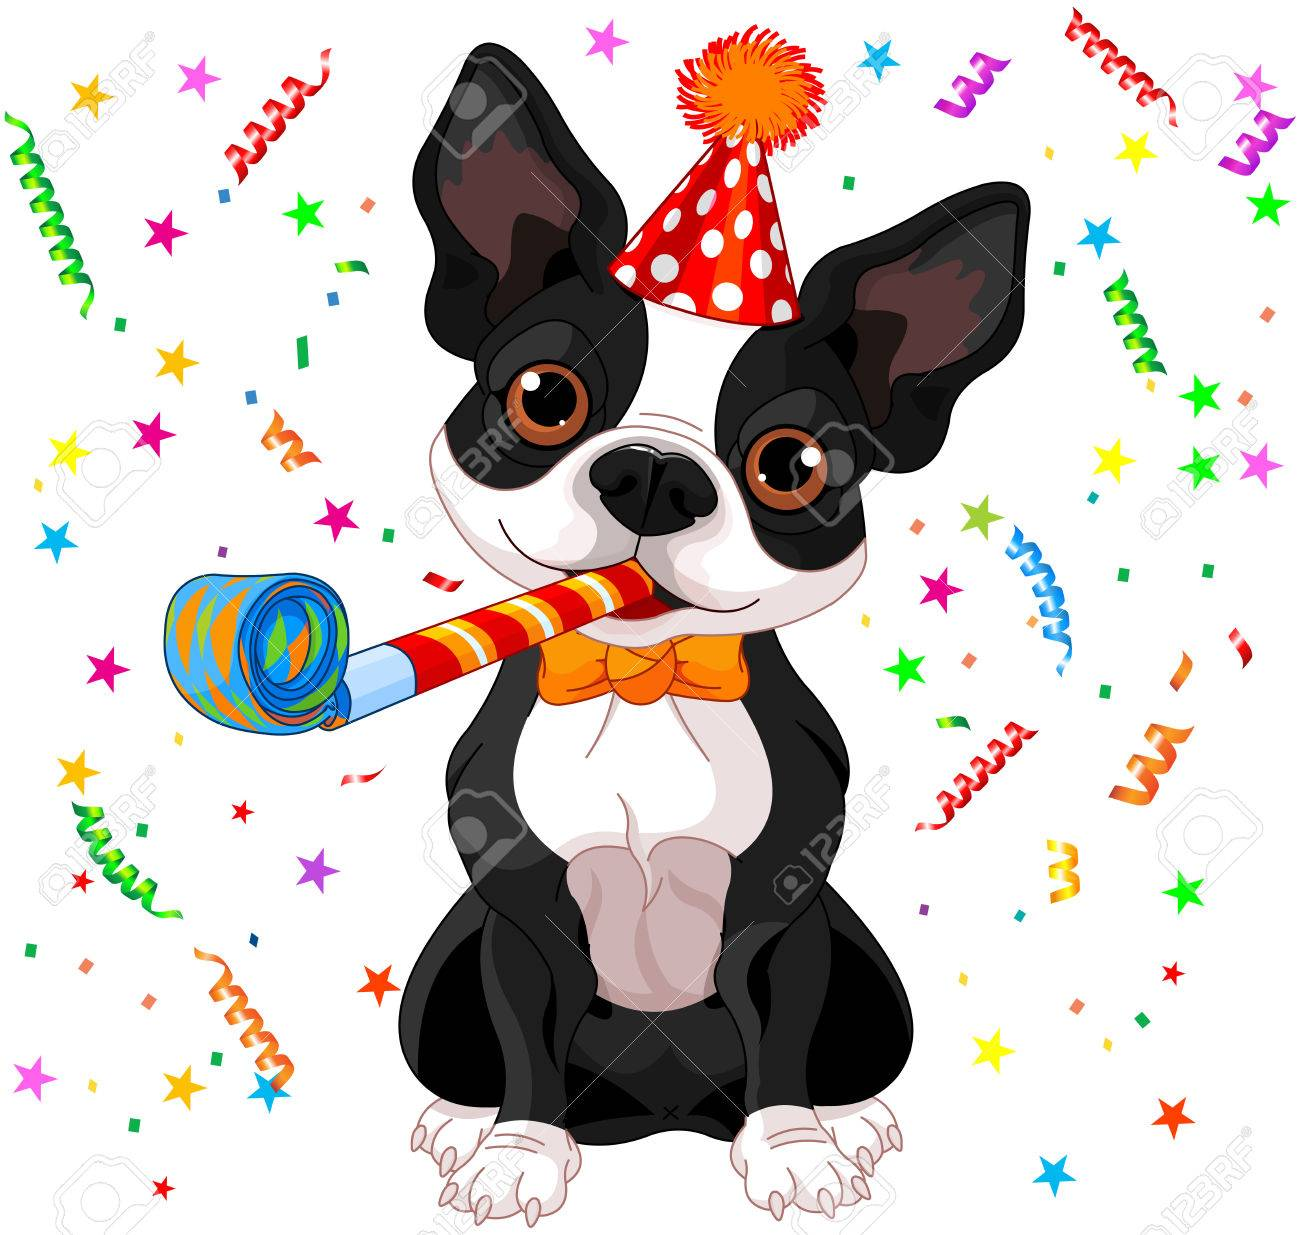 Refuge de l'AVA: Aide aux Vieux Animaux - Page 3 35588778-illustration-of-cute-boston-terrier-celebrating